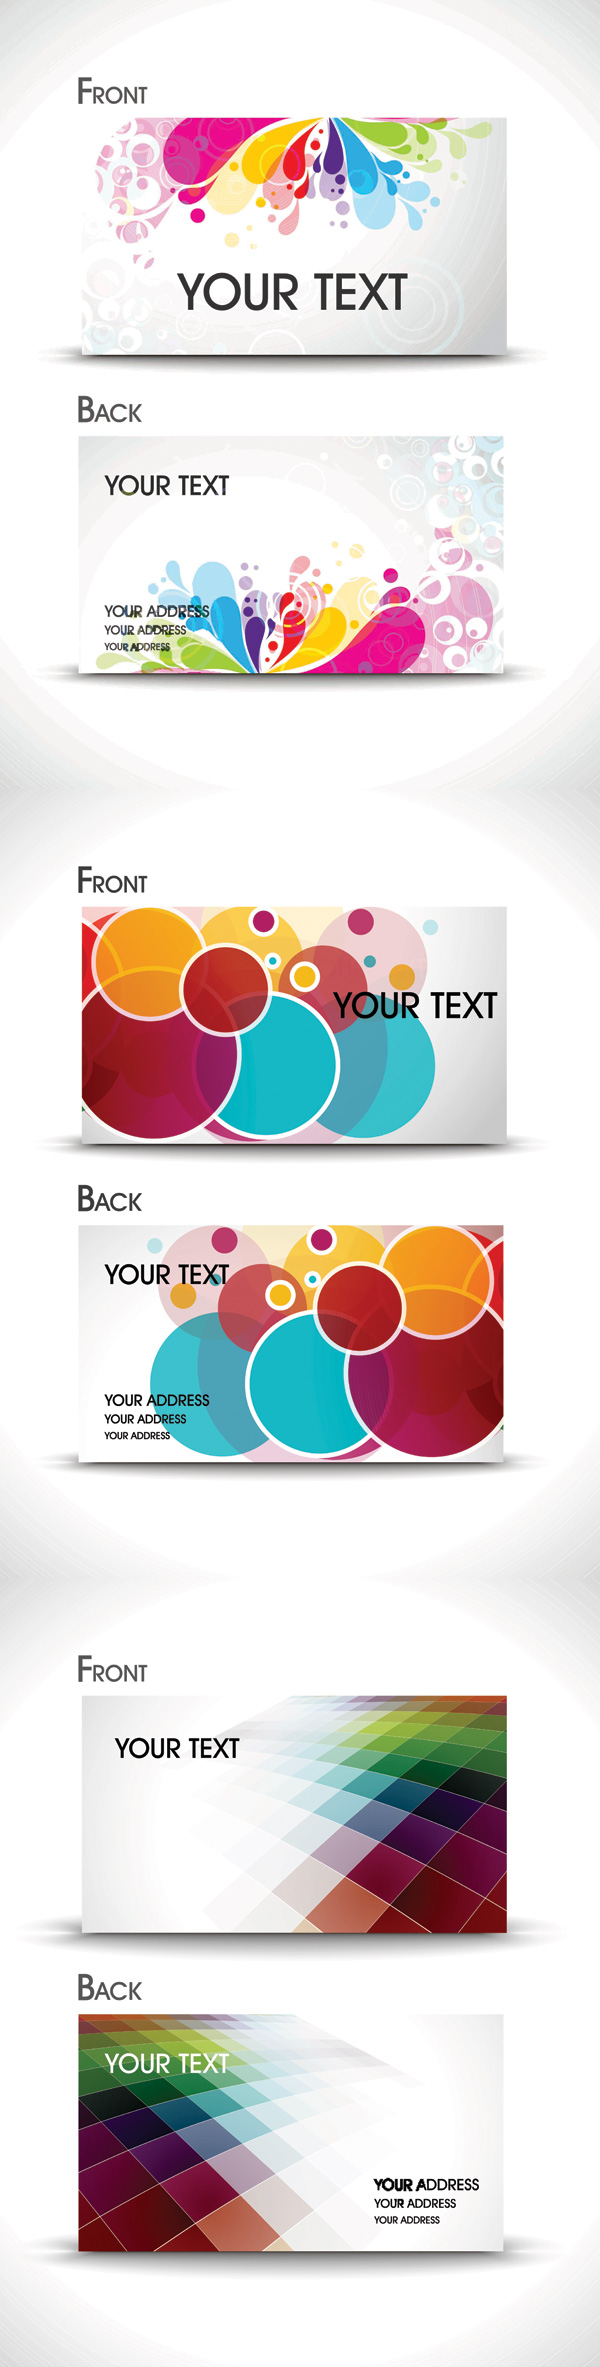 Brilliant business card template - vector material